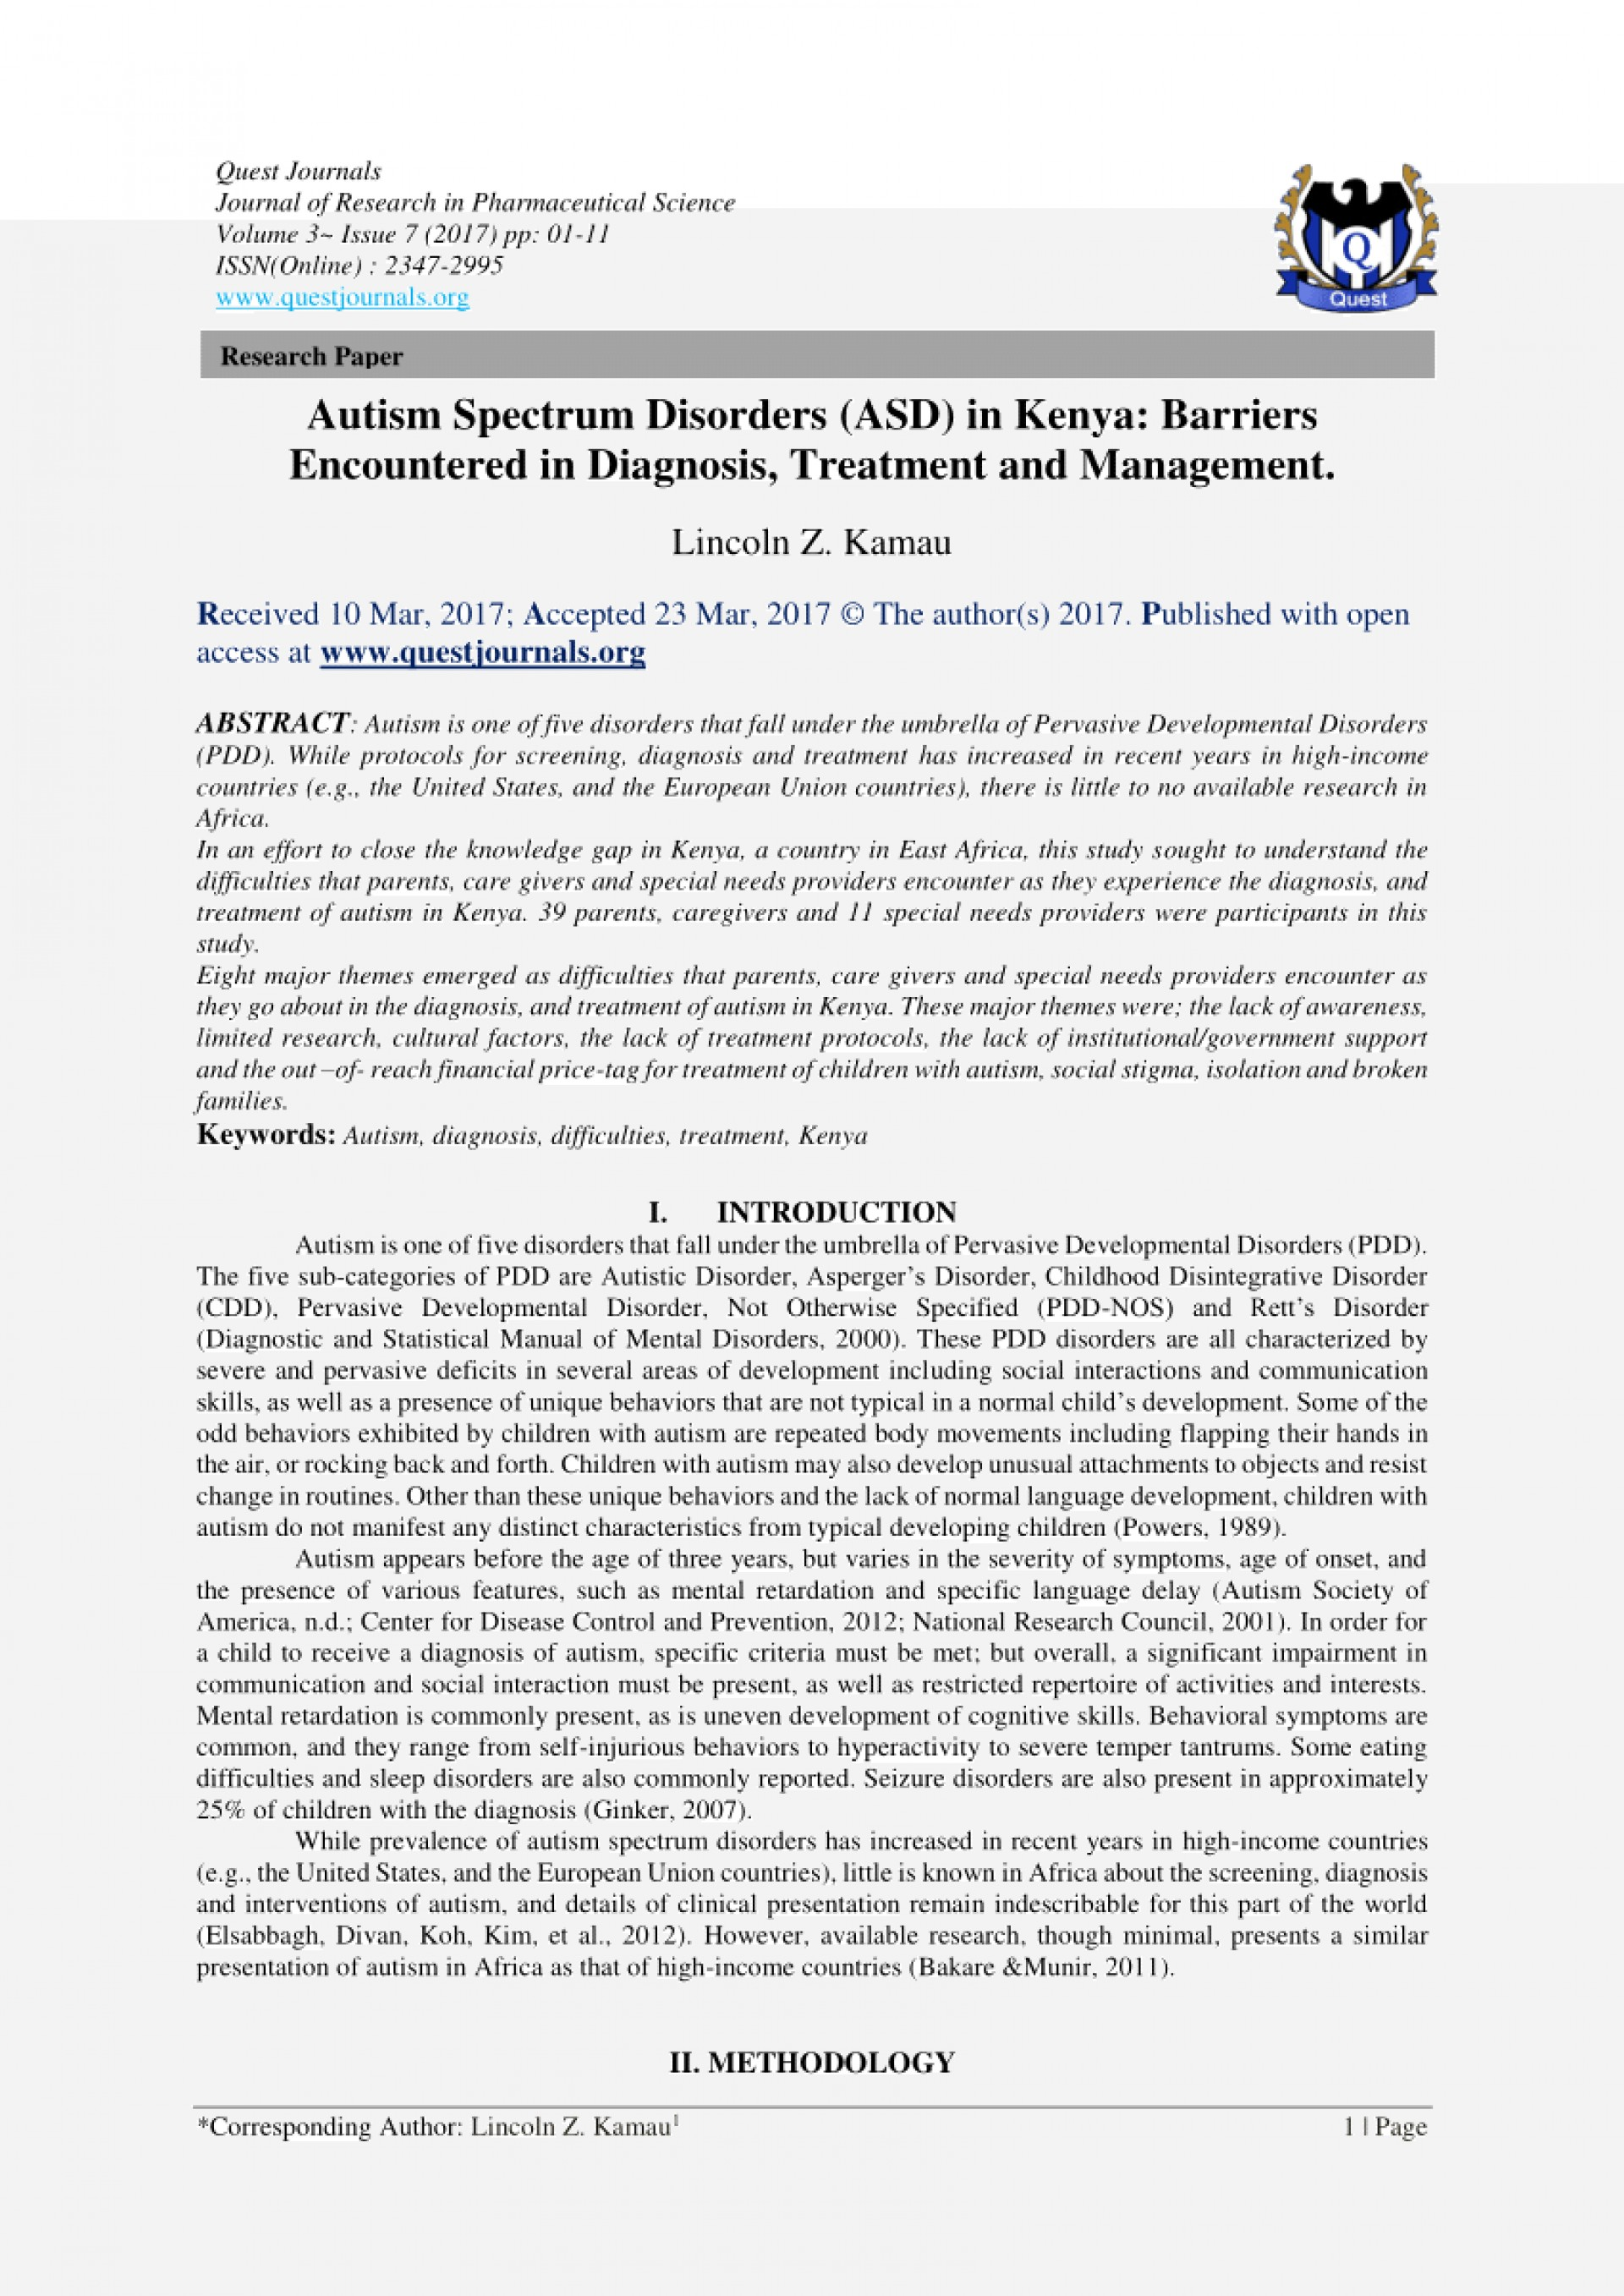 003 Research Paper Essay On Autism Spectrum Disorder Review Article Disorders Paper20 Awesome Papers Topics 1920